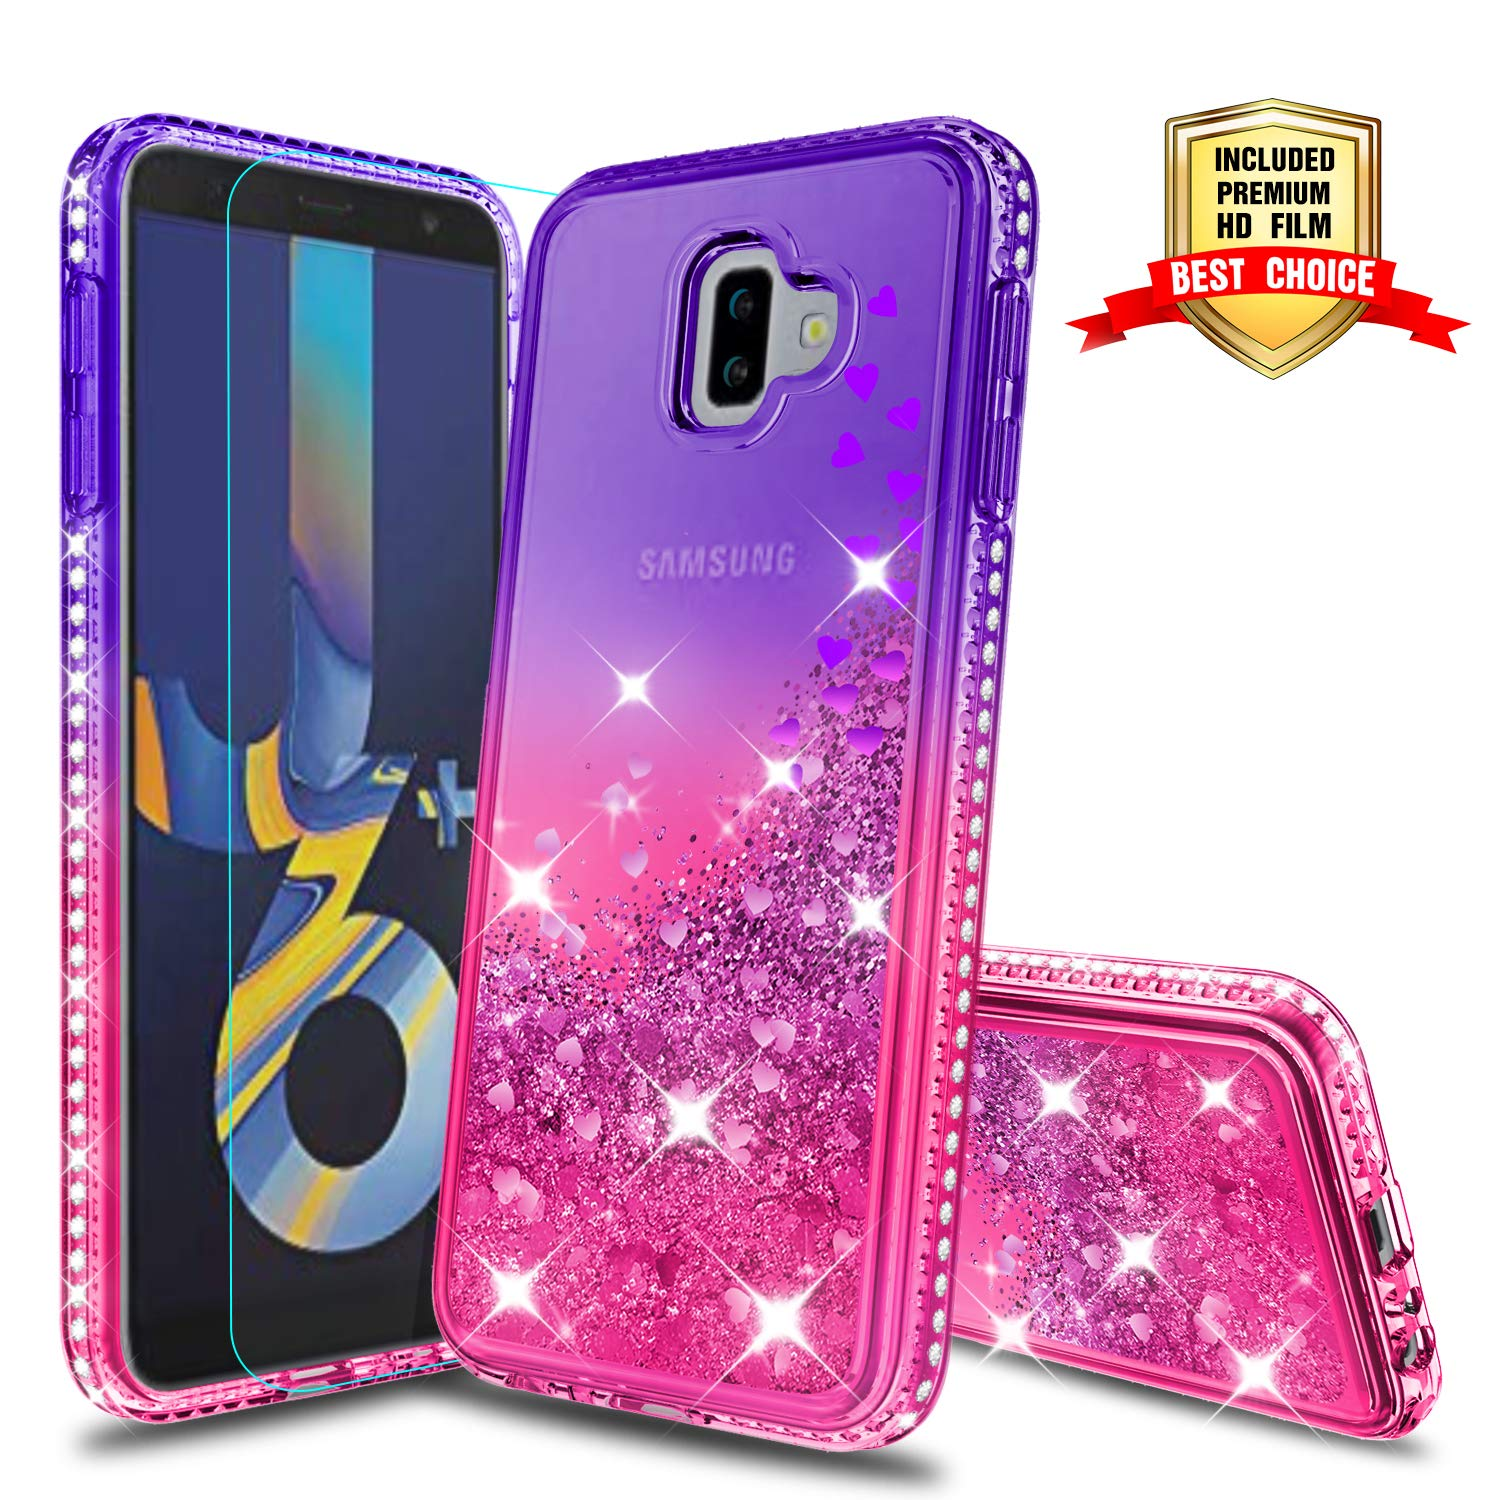 sneakers for cheap fd6d1 79c57 Galaxy J6 Plus Case, Samsung Galaxy J6 Prime Case,Samsung Galaxy J6+ Case,  Atump Fun Glitter Liquid Sparkle Diamond Cute TPU Silicone Protective Phone  ...